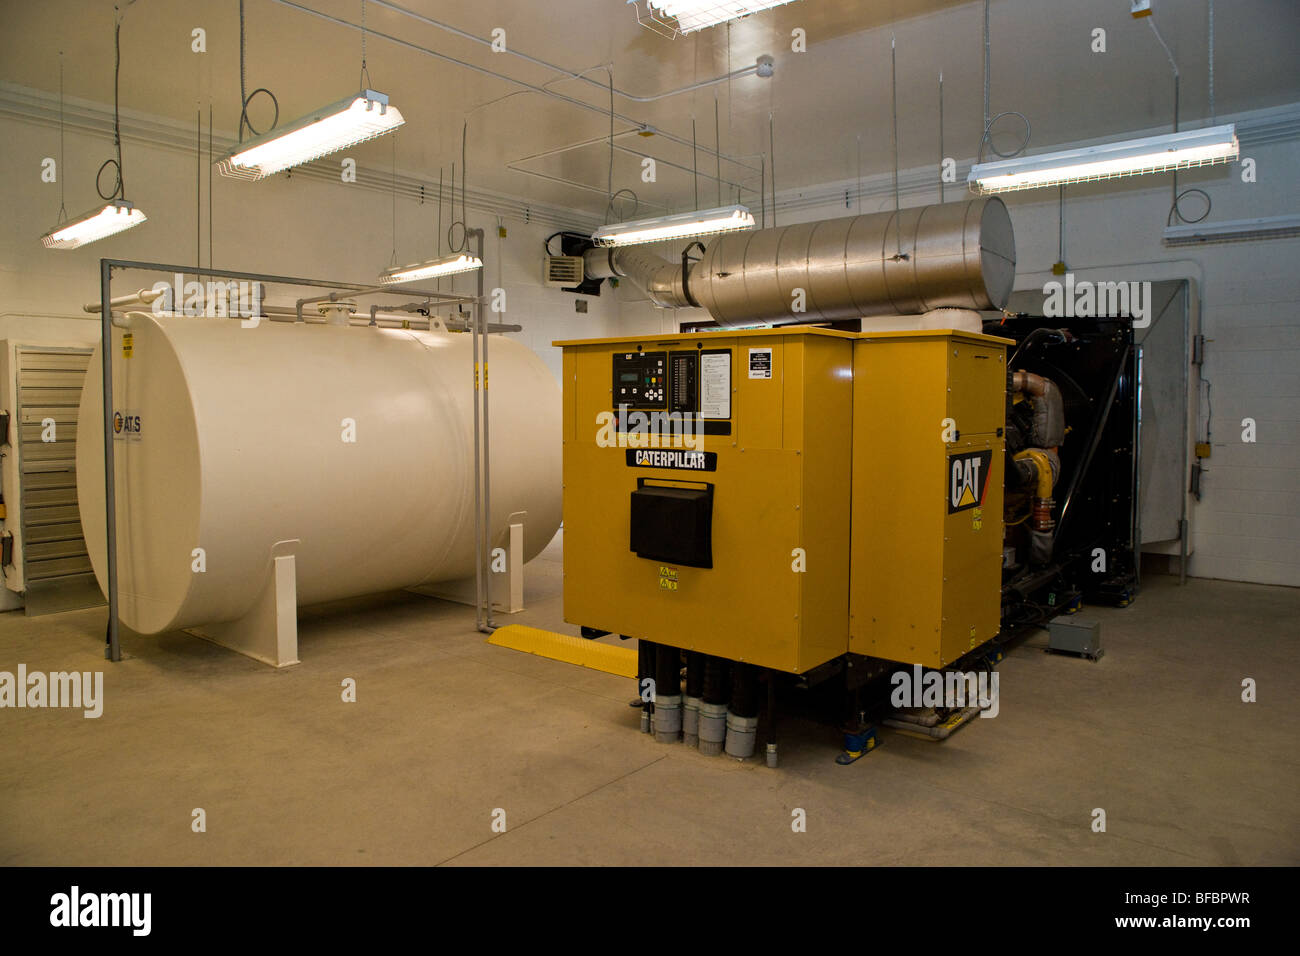 A backup power generator and fuel tank Stock Photo: 26689651